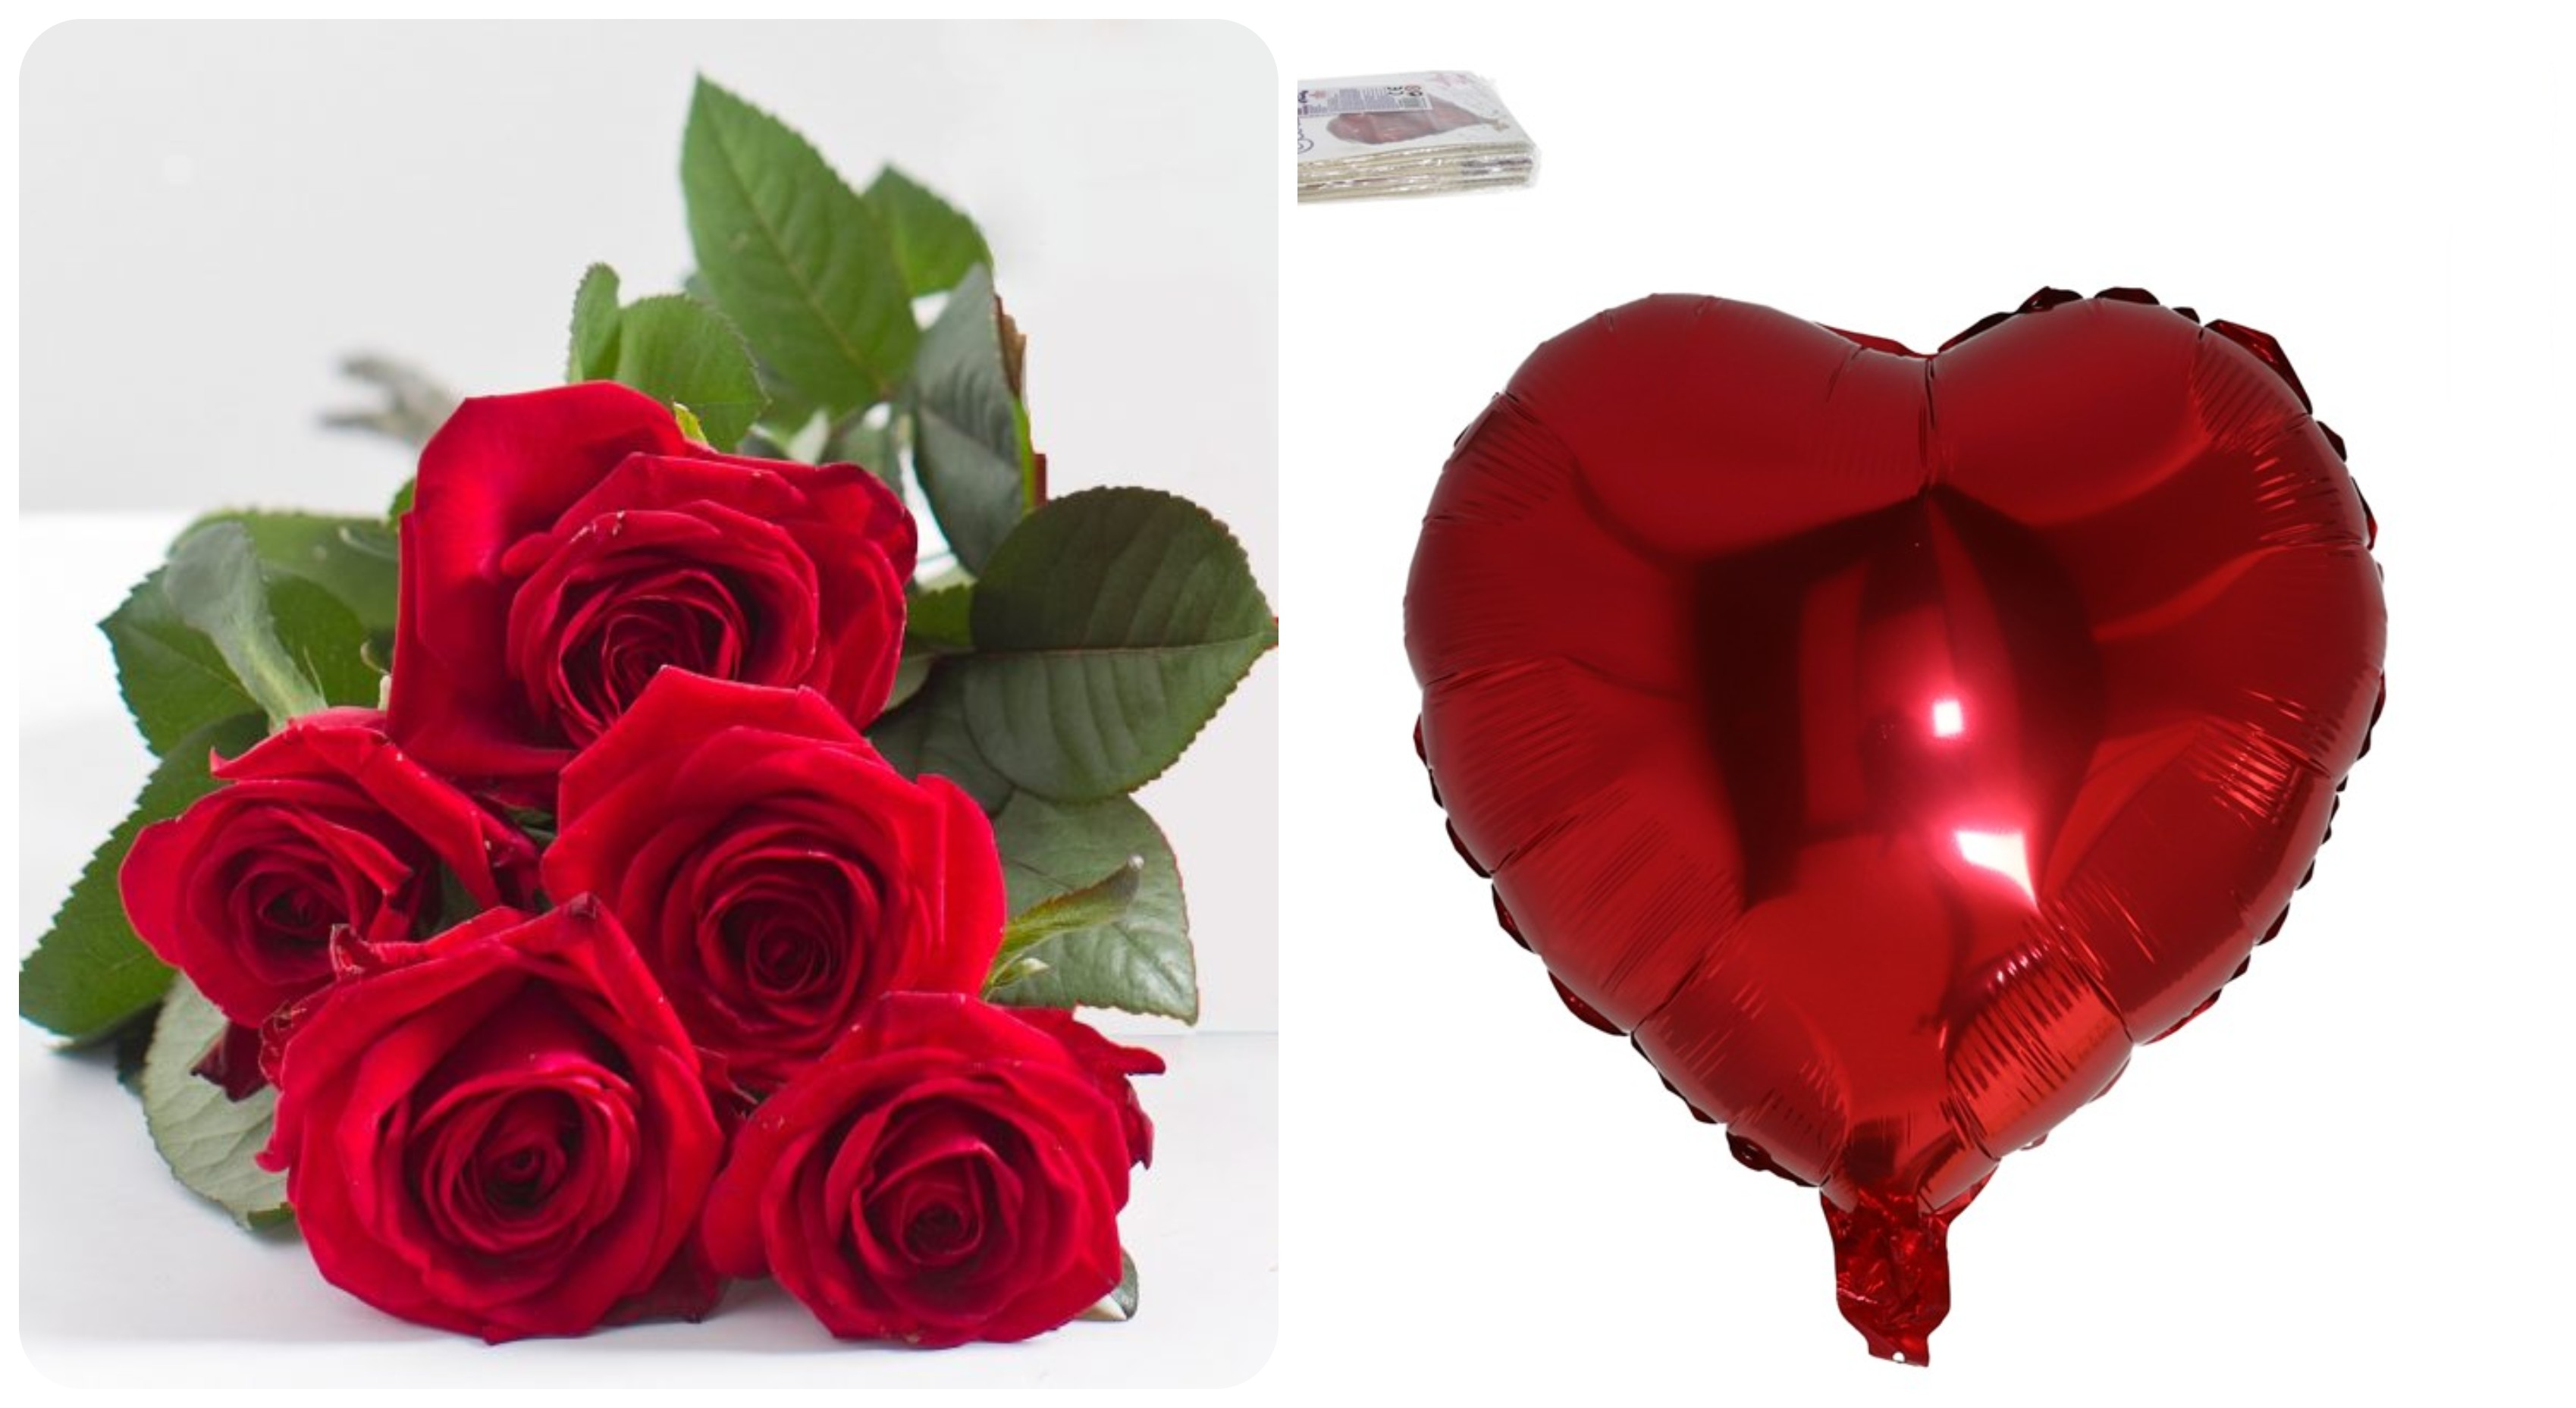 BOUQUET OF 5 FRESH ROSES WITH HELIUM BALLOON.